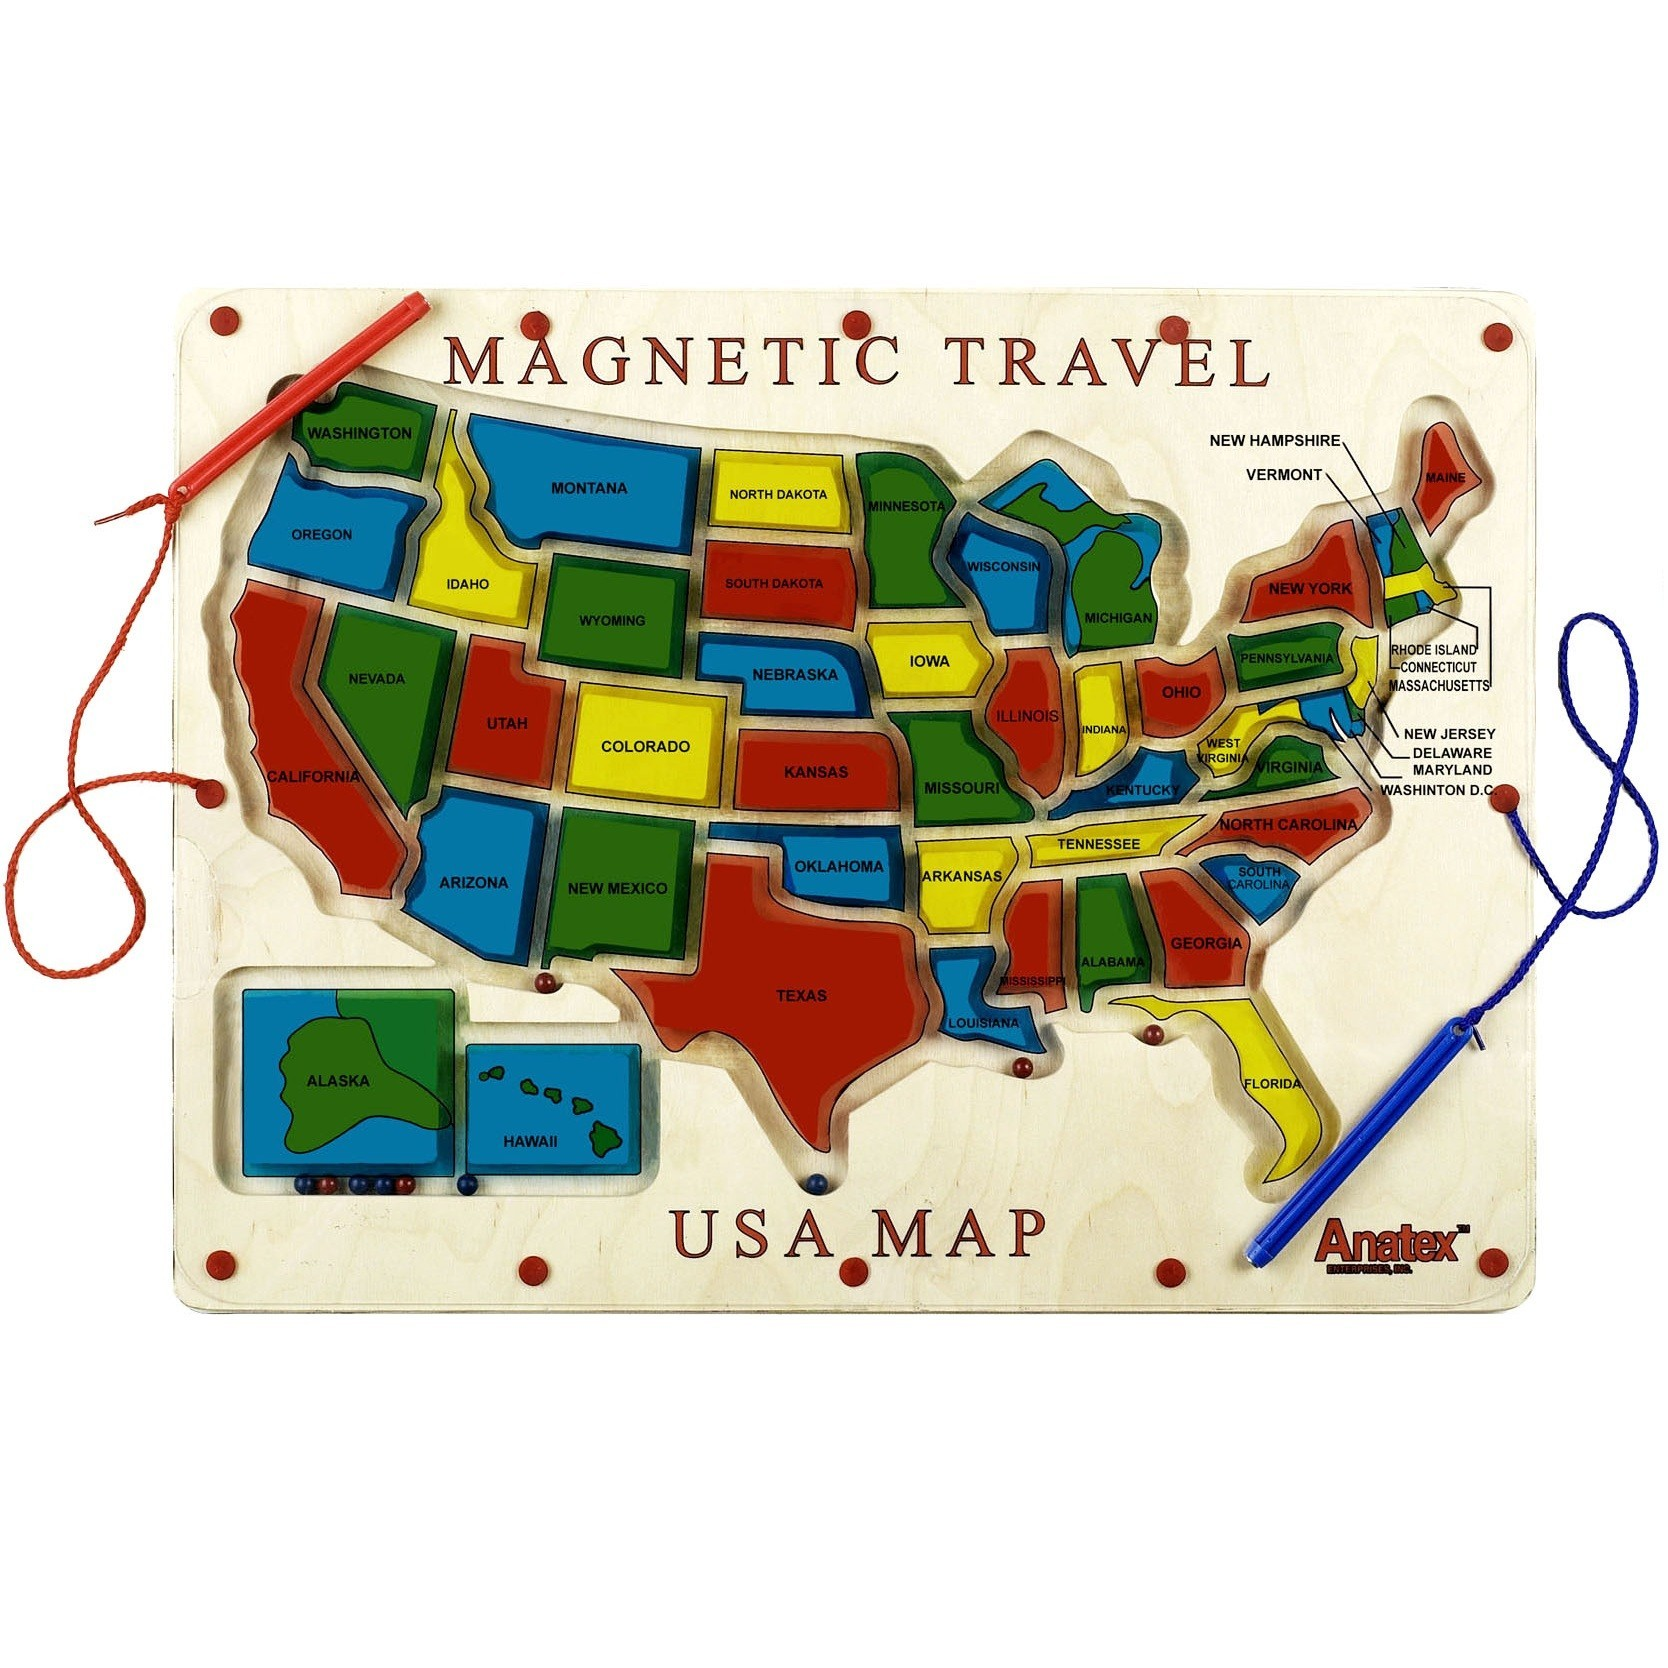 Magnetic Travel USA Map - Travel map us